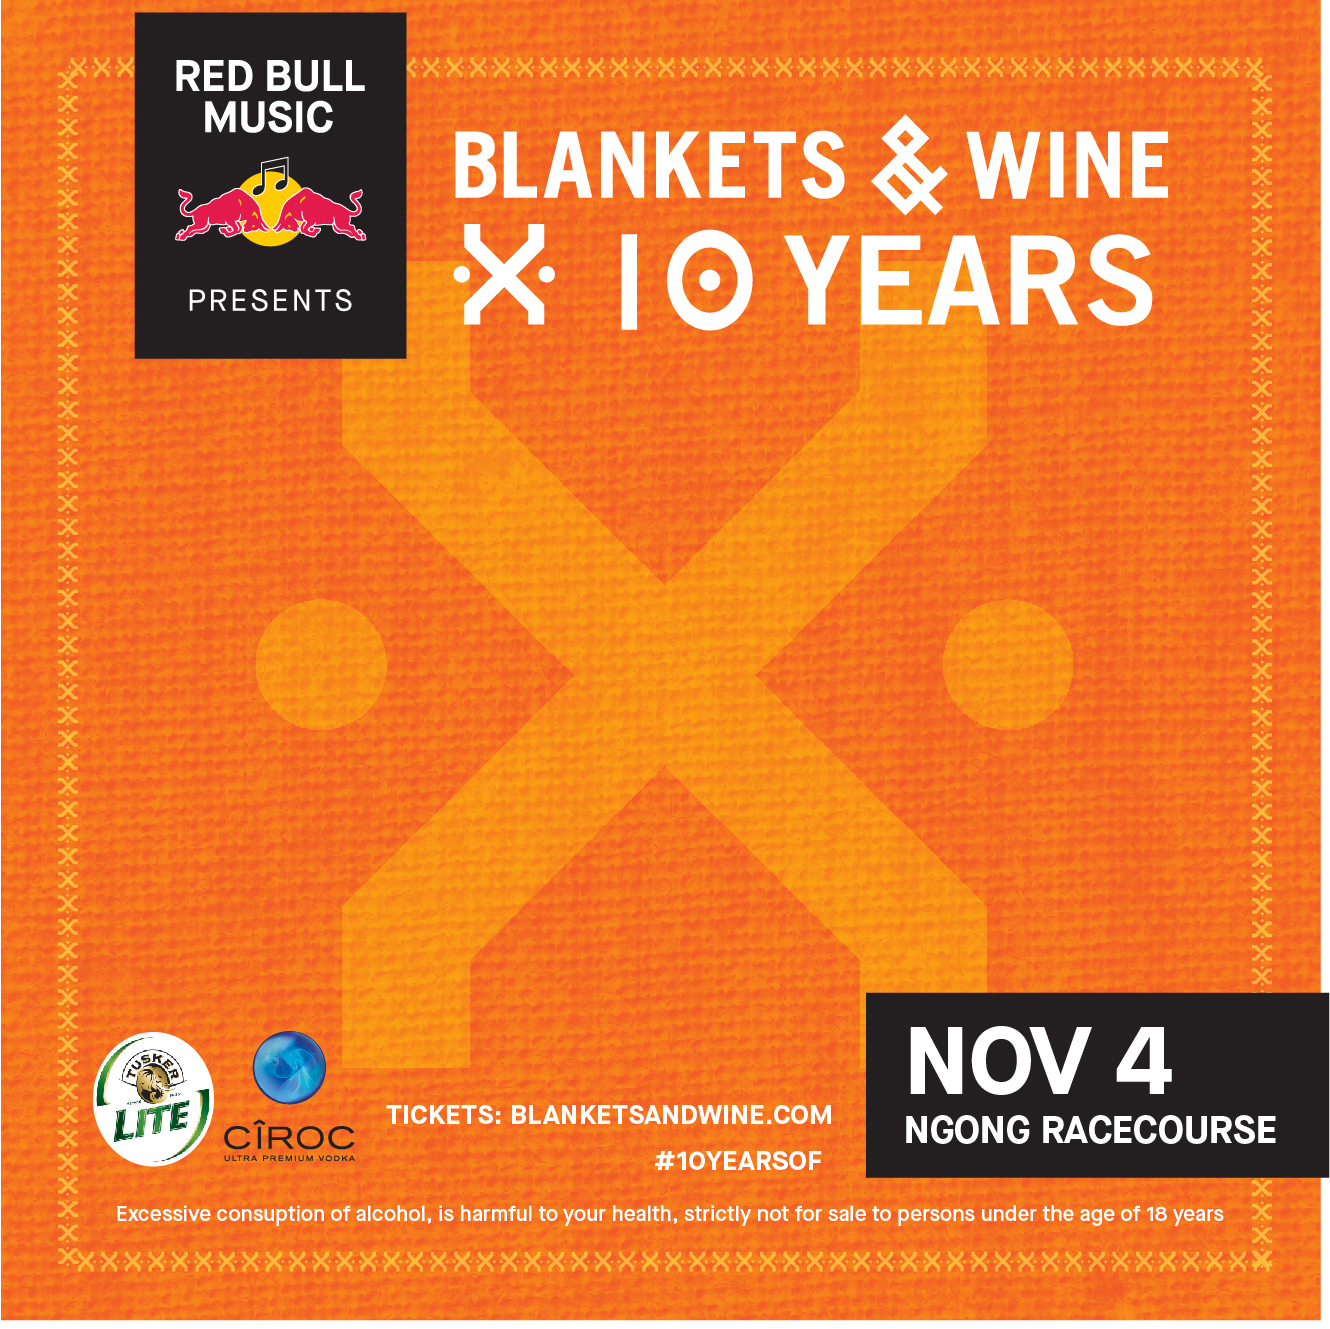 blankets wine red bull music presents blankets wine x 10 years